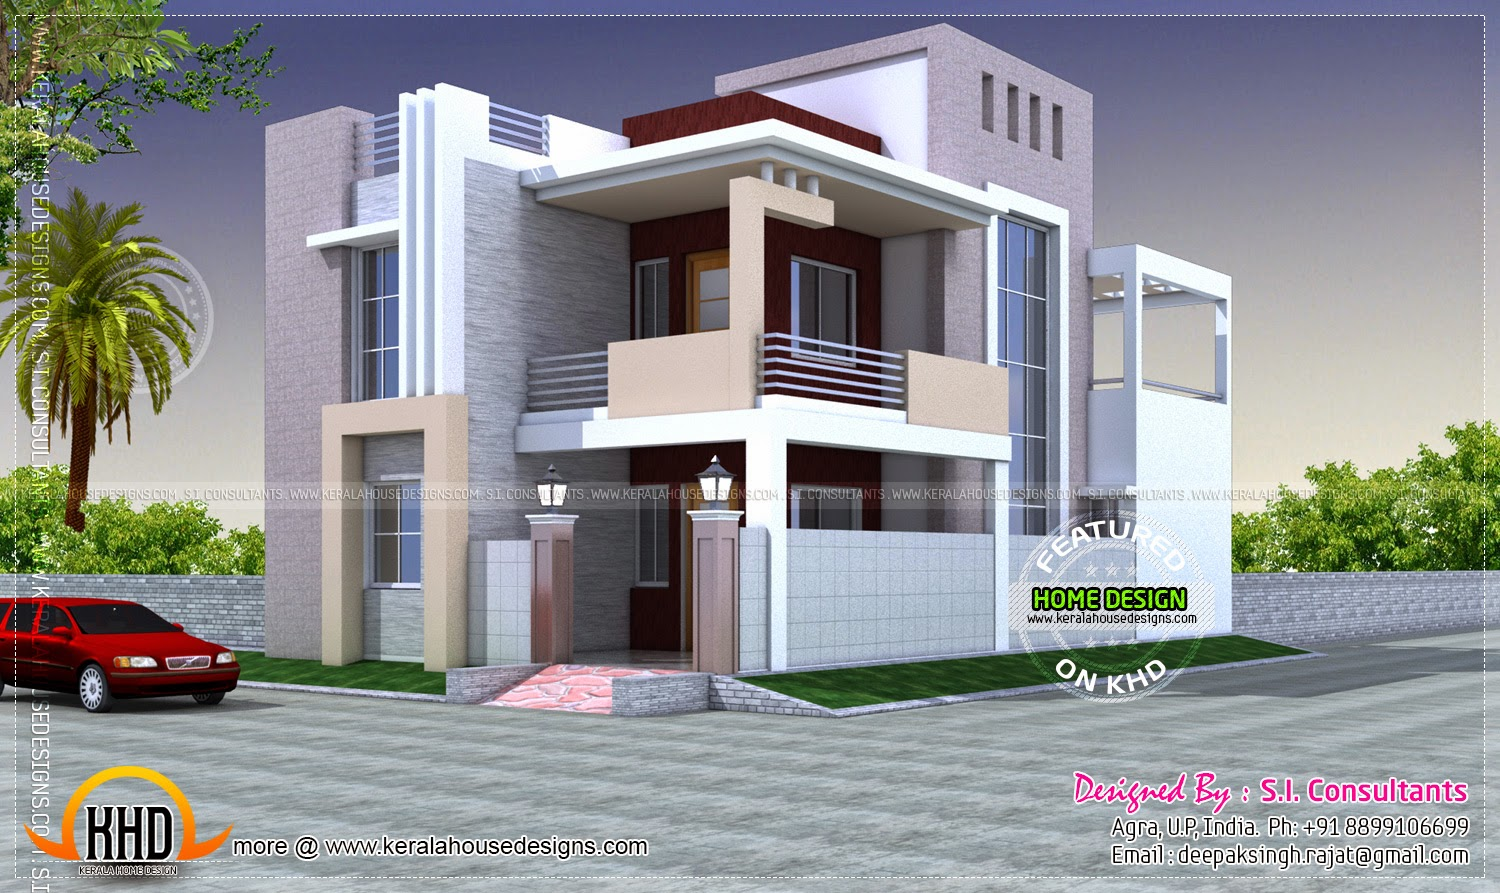 House exterior elevation modern style kerala home design for House design indian style plan and elevation